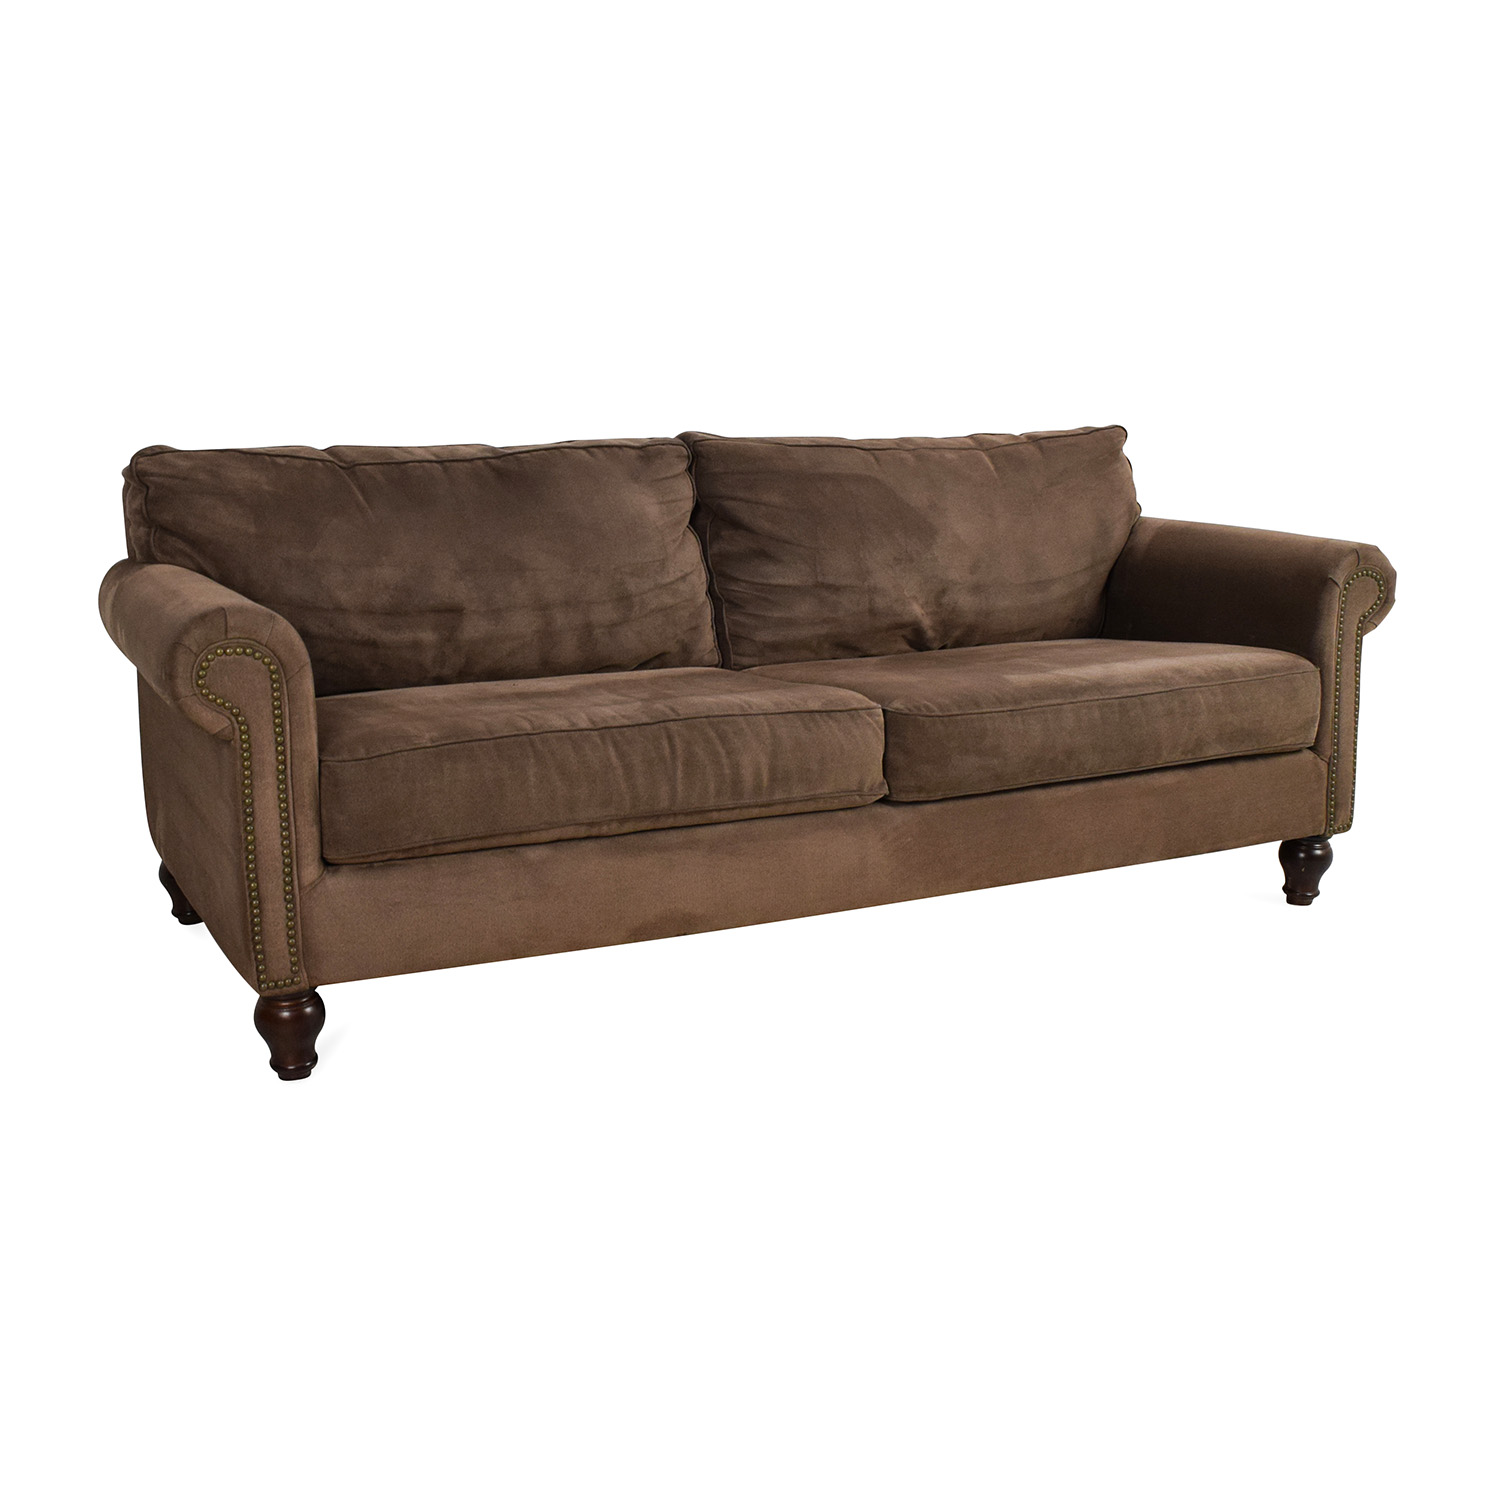 Pier One Sofa Bed 15 Collection Of Pier 1 Sofa Beds Thesofa